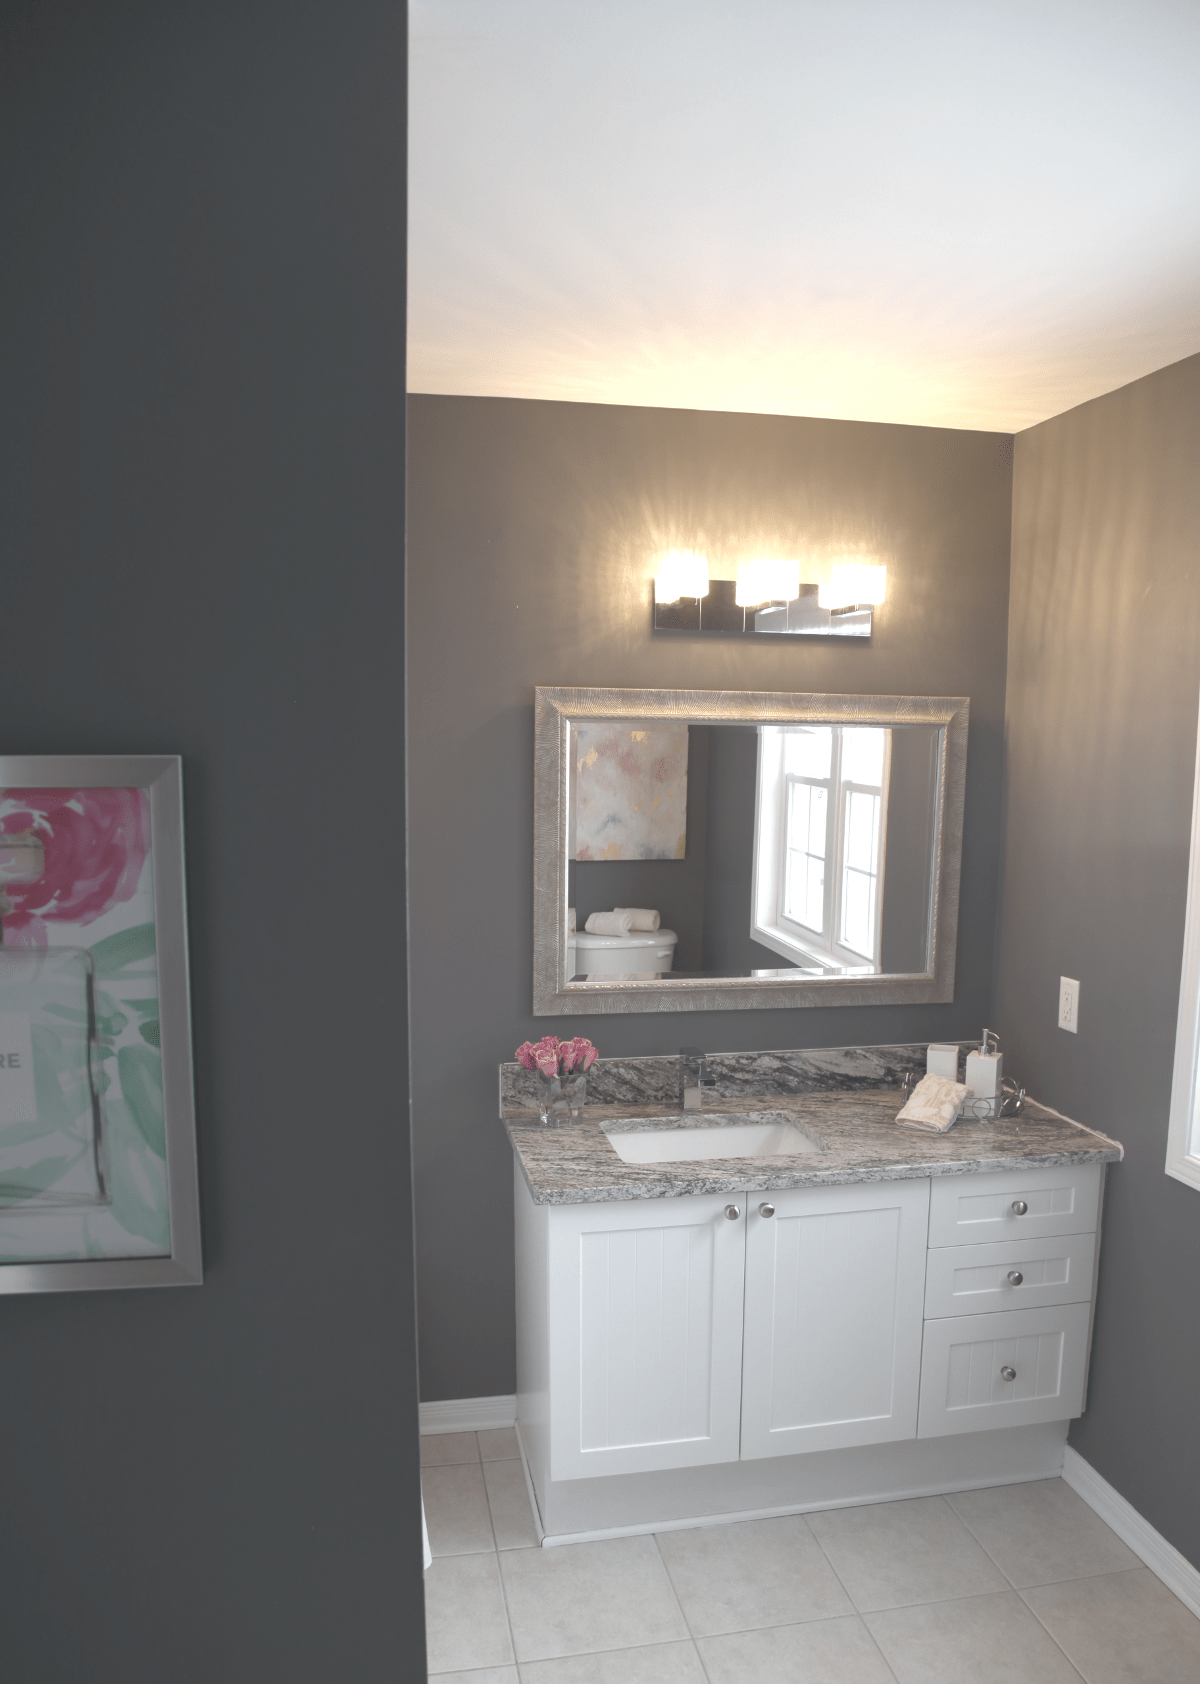 Bathroom Staging Staging A Bathroom And Making It Pretty Daniela Pluviati Home